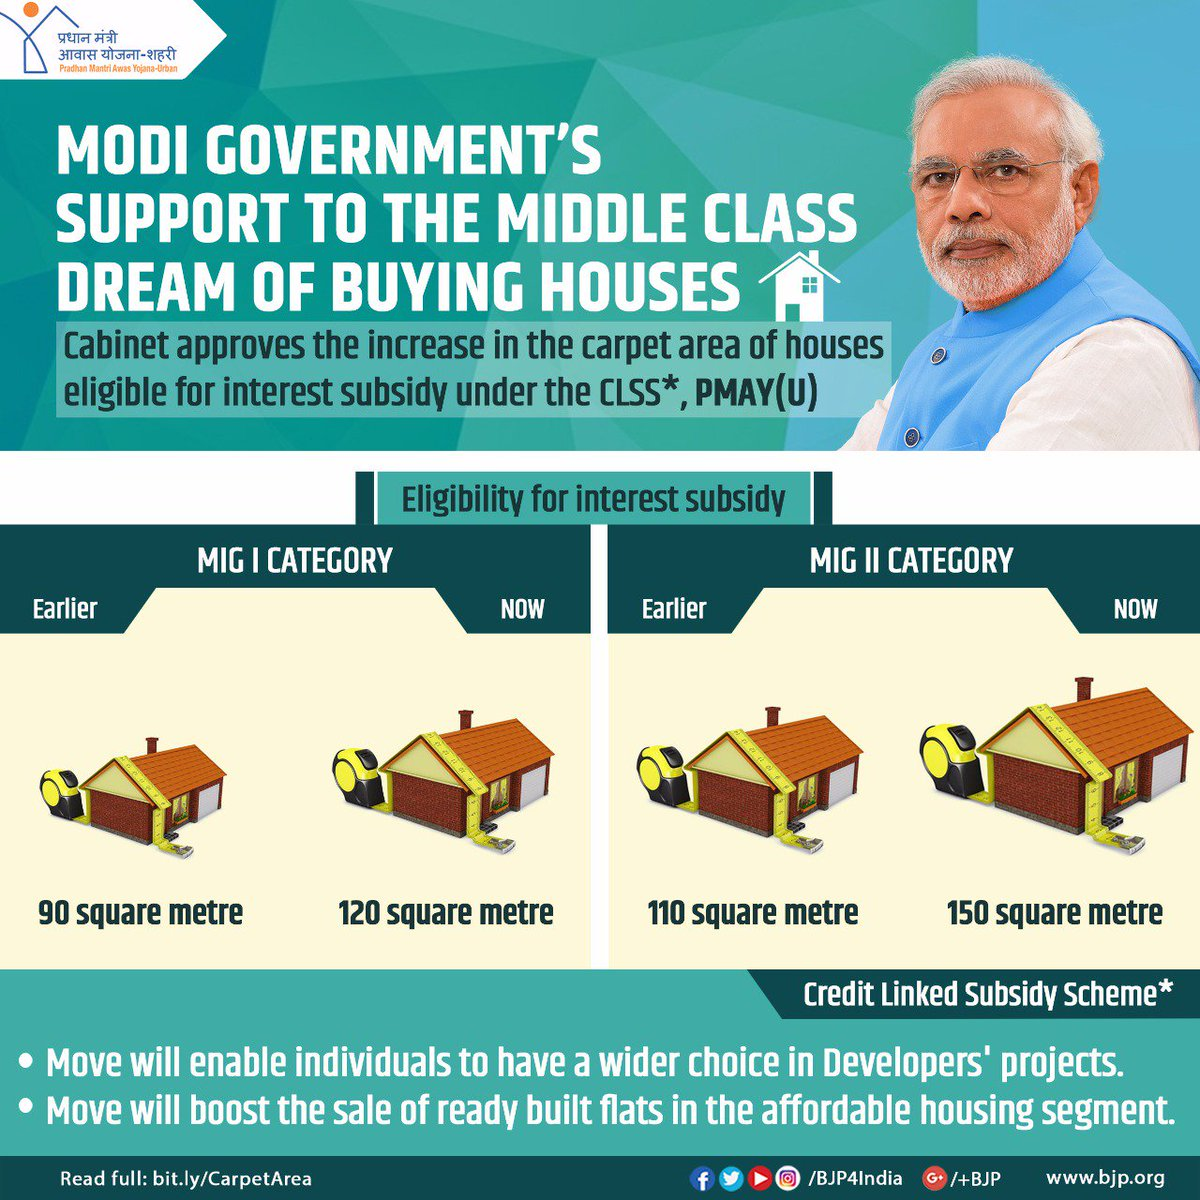 Modi government's support to the middle class dream of buying houses : Cabinet approves the increase in the carpet area of houses eligible for interest subsidy under PMAY(U).